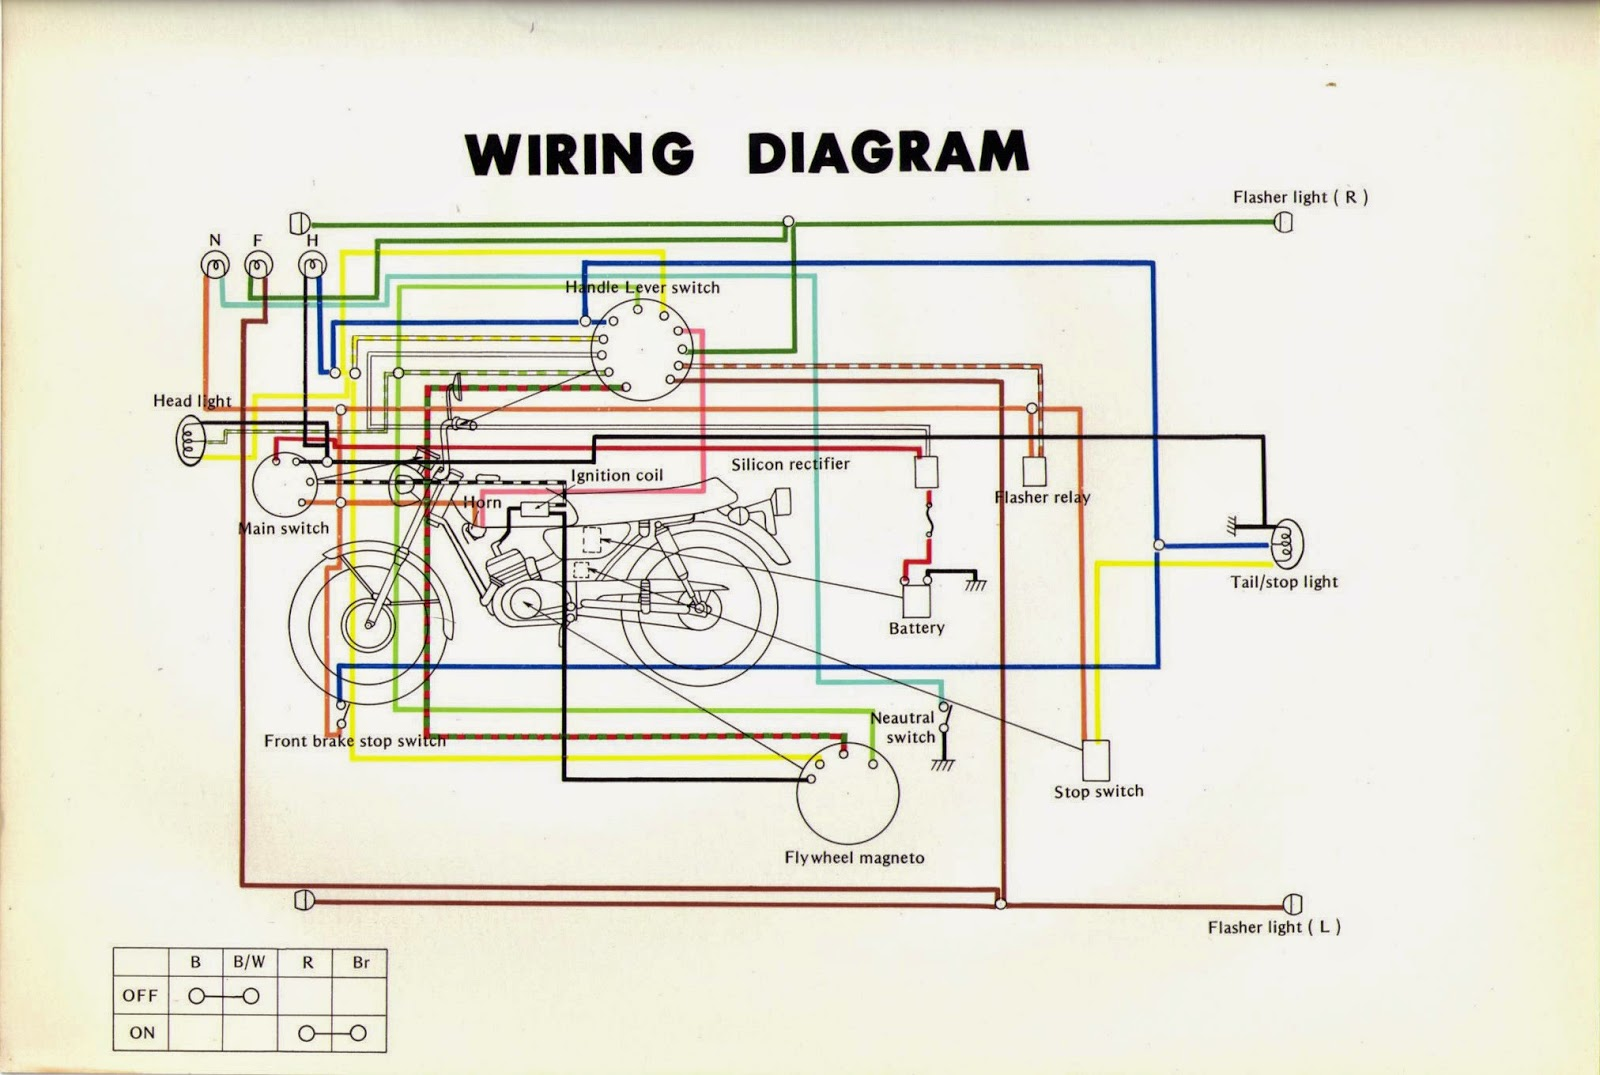 yamaha ls2 wiring diagram books of wiring diagram \u2022 auto wiring  diagrams yamaha ls2 wiring